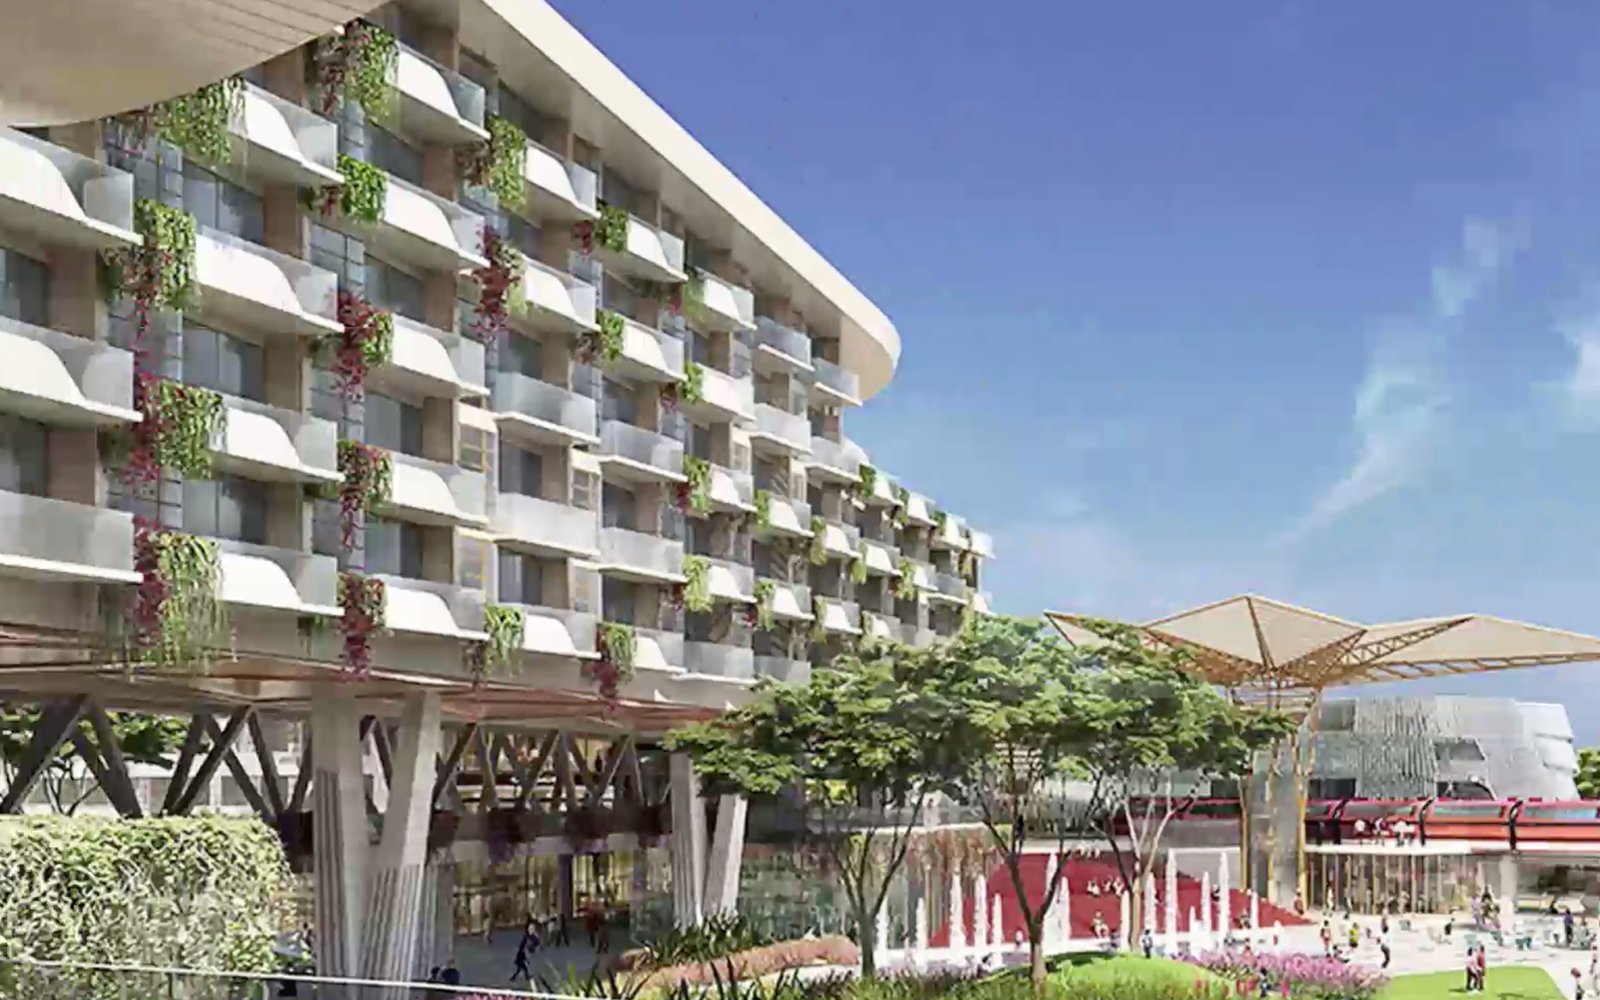 Disneyland Is Opening Its First New Hotel In Almost 20